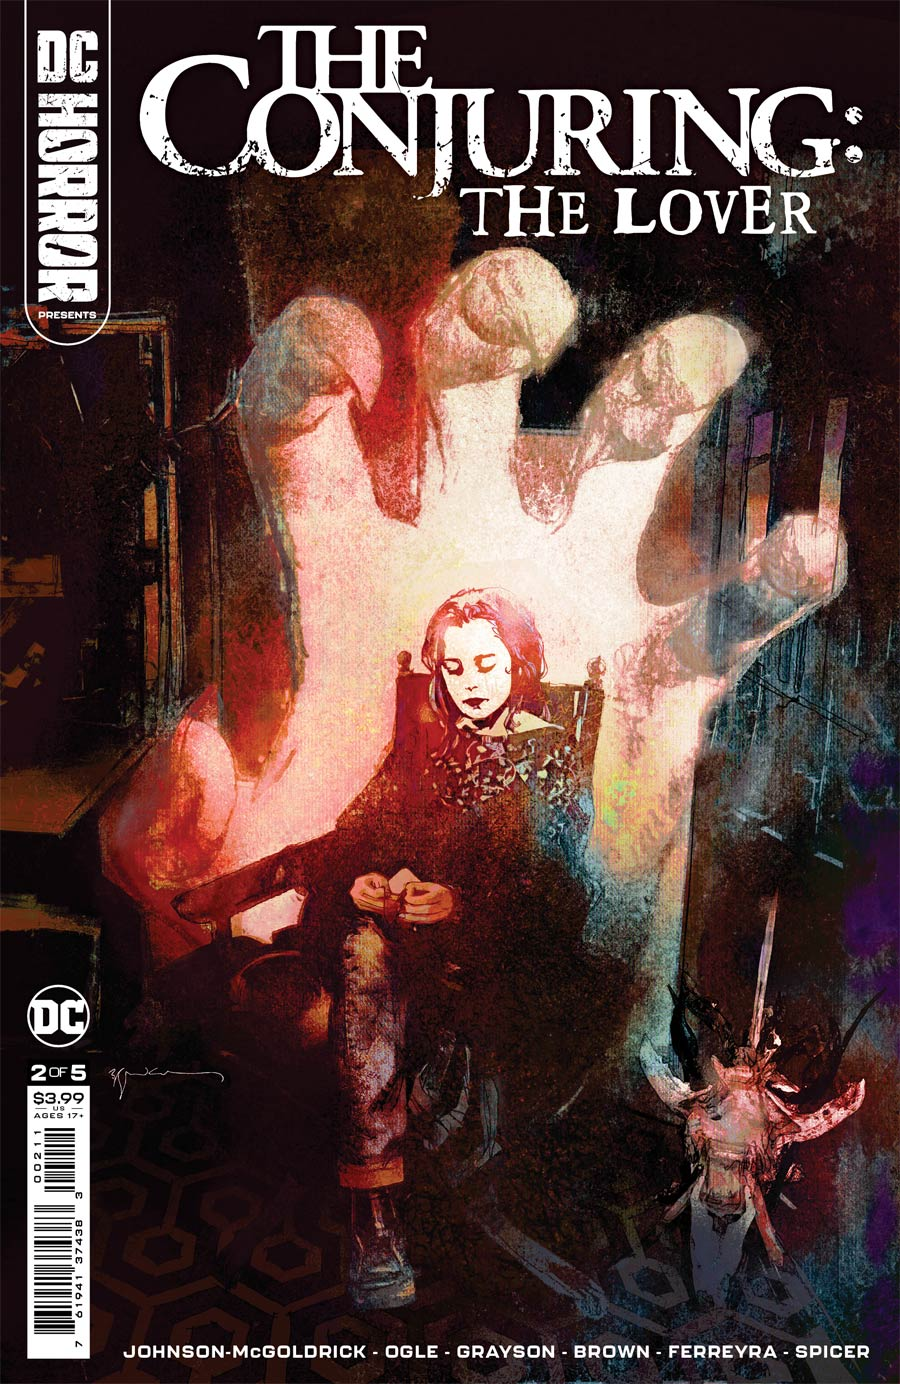 DC Horror Presents The Conjuring The Lover #2 Cover A Regular Bill Sienkiewicz Cover